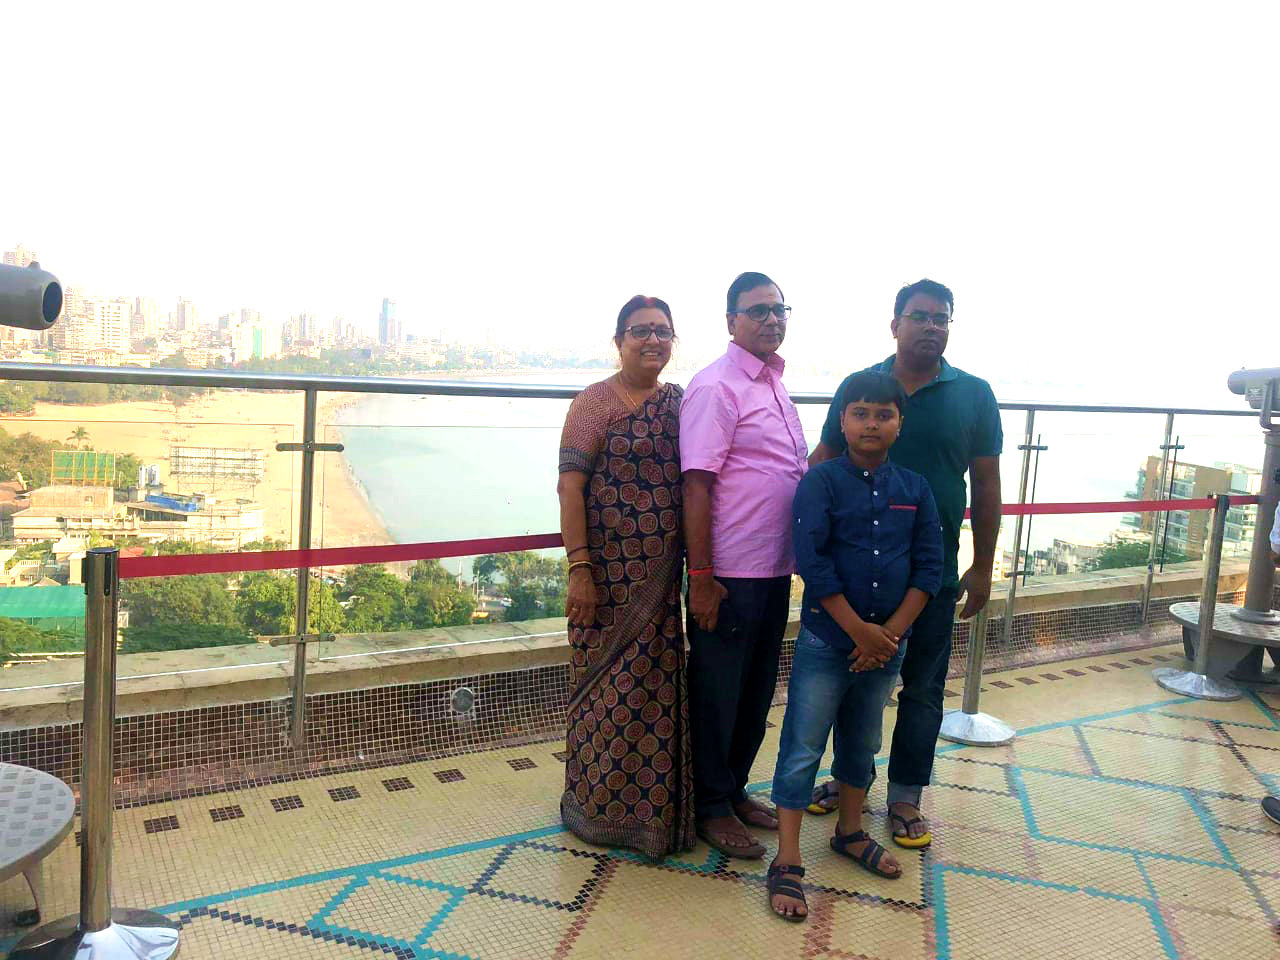 Mr. & Mrs. Madhepuri along with their grandson Aditya & his father Dr.Barun after enjoying the Sea-Soar scenic beauty of Mumbai with different Powerful Telescopes.